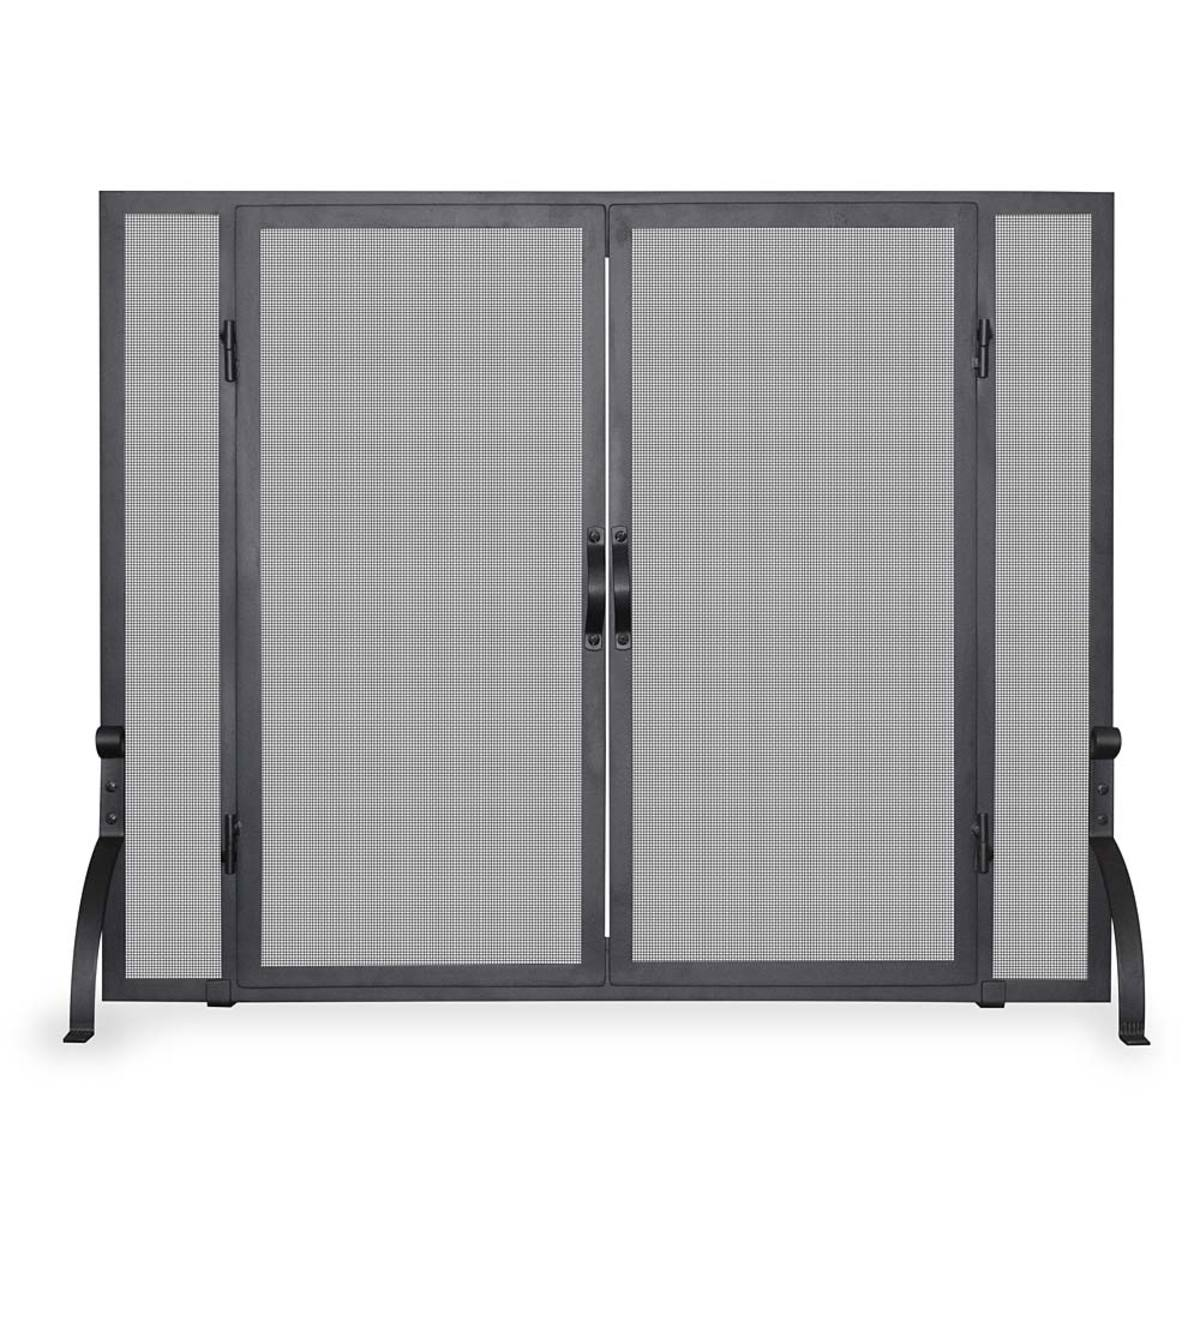 Single Panel Wrought Iron Fireplace Screen with Doors